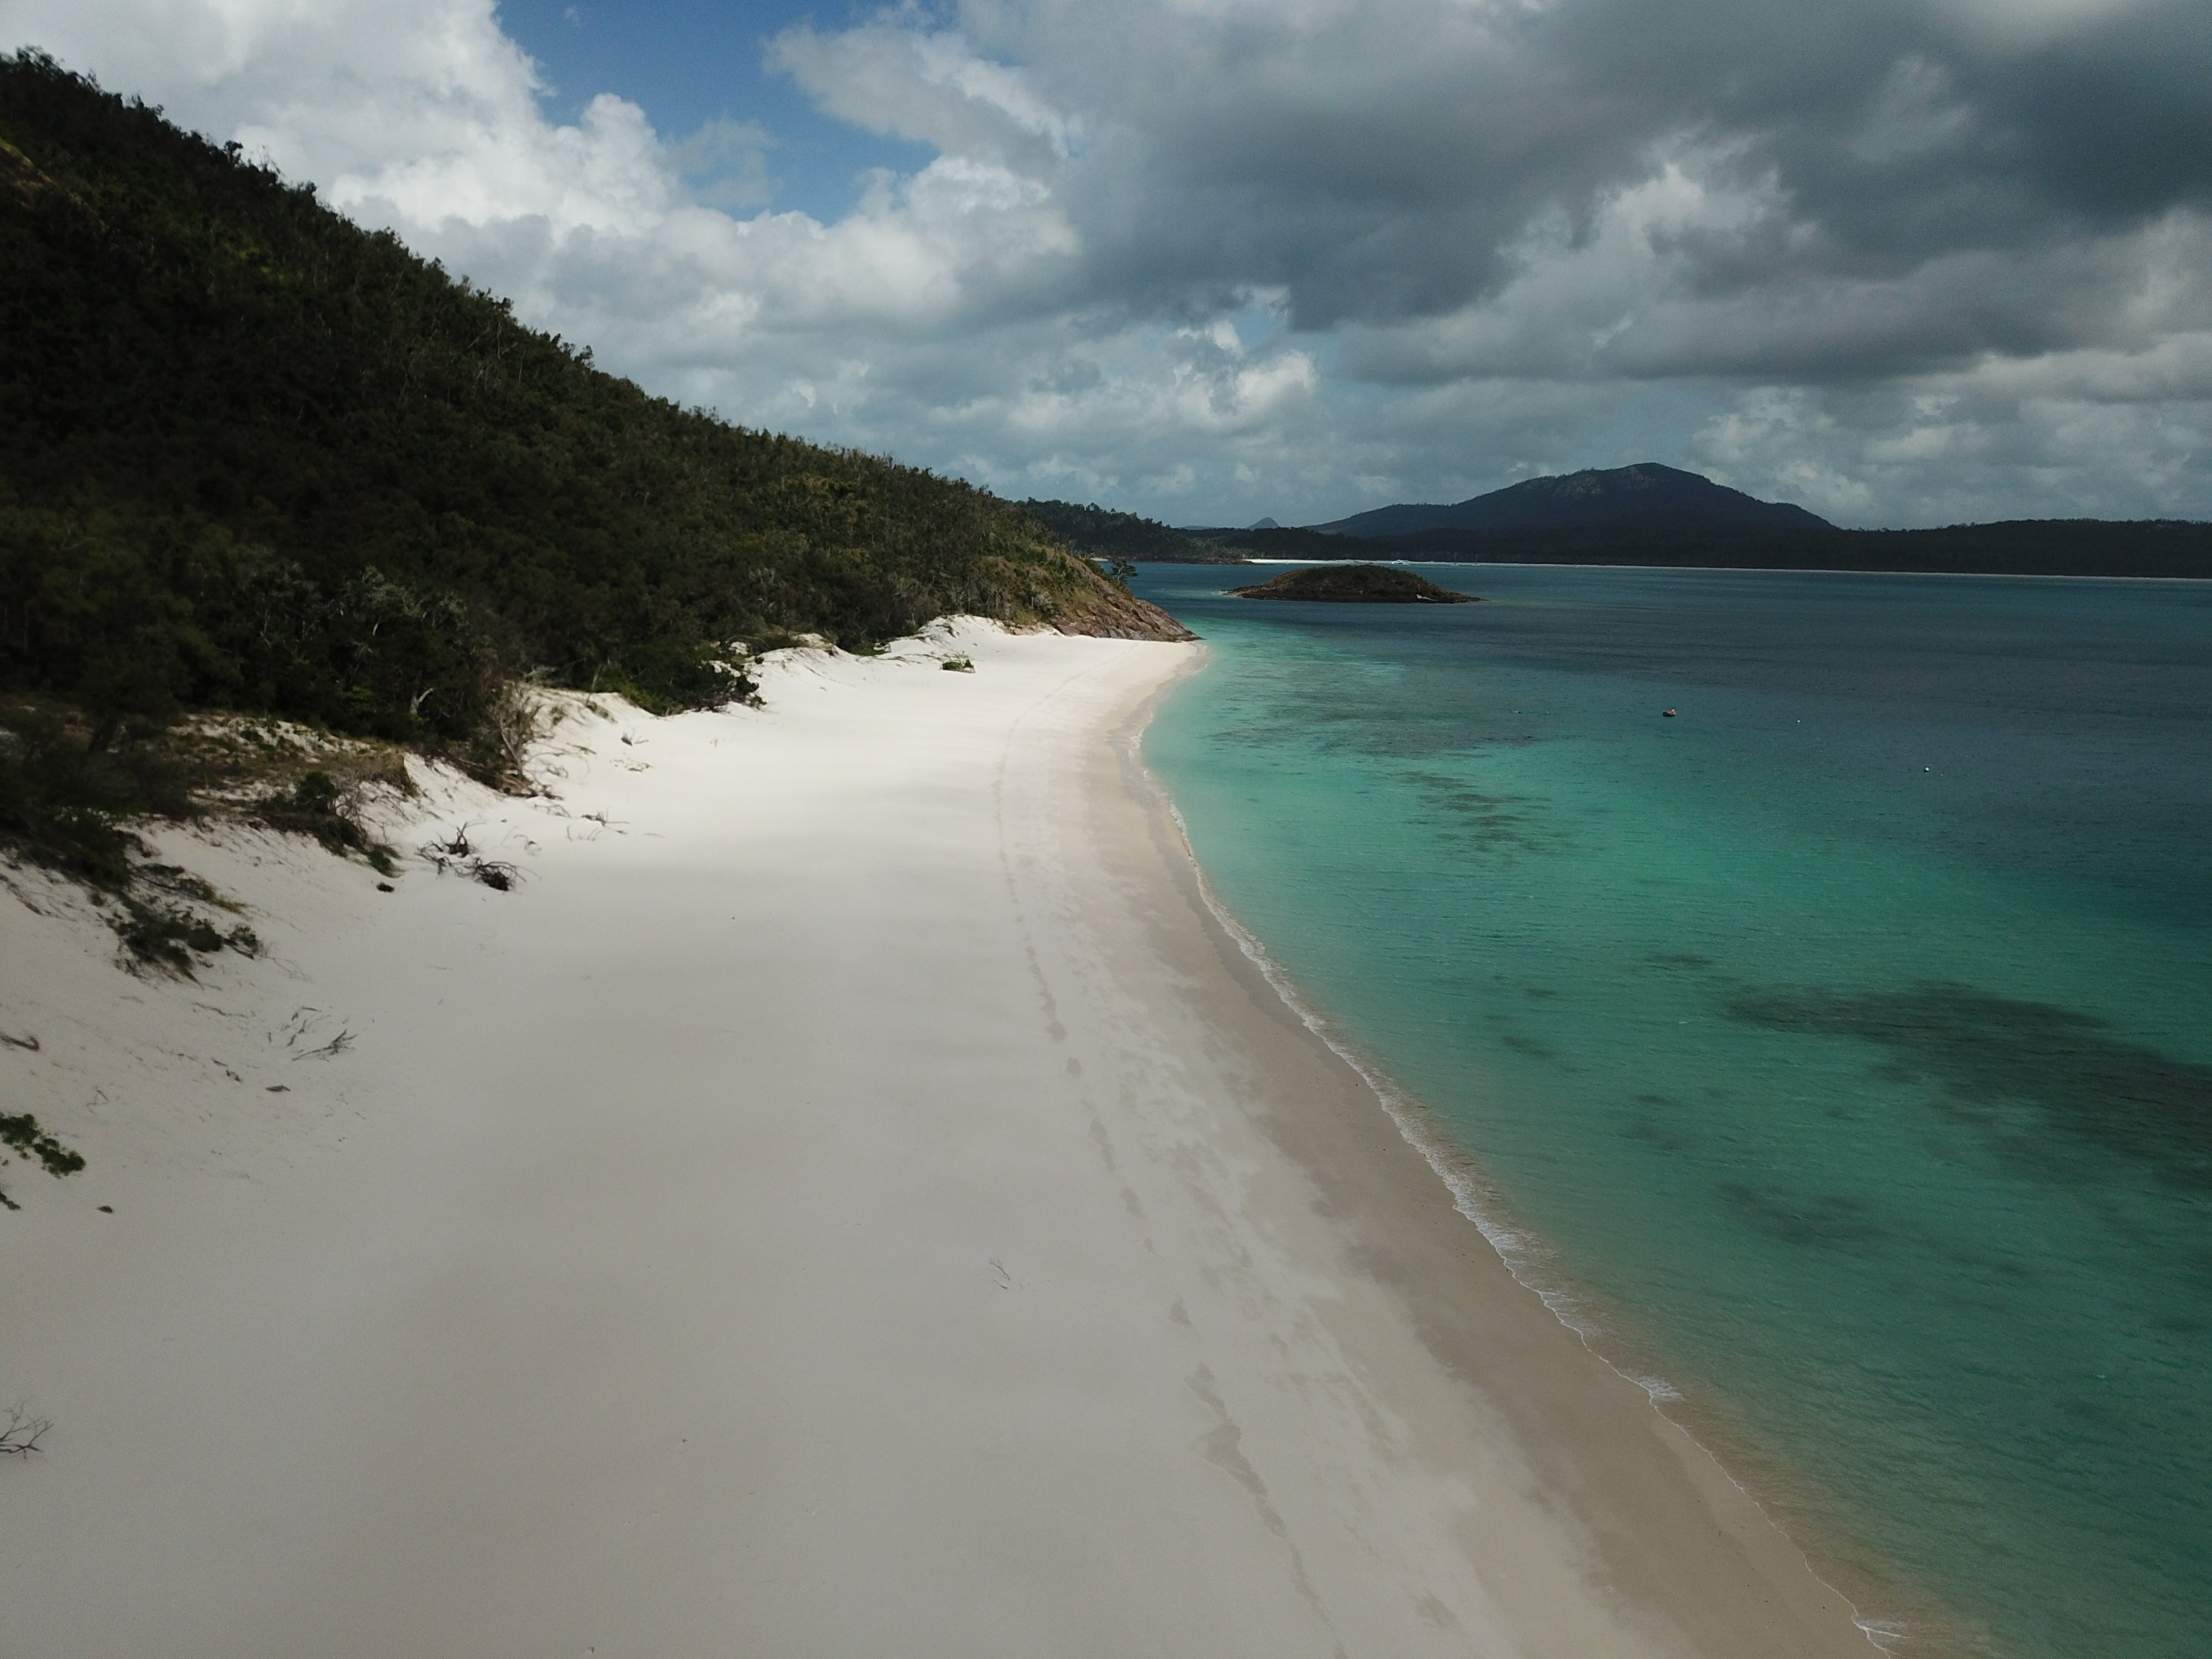 Chalkies Beach, Hazelwood Island in the Whitsundays